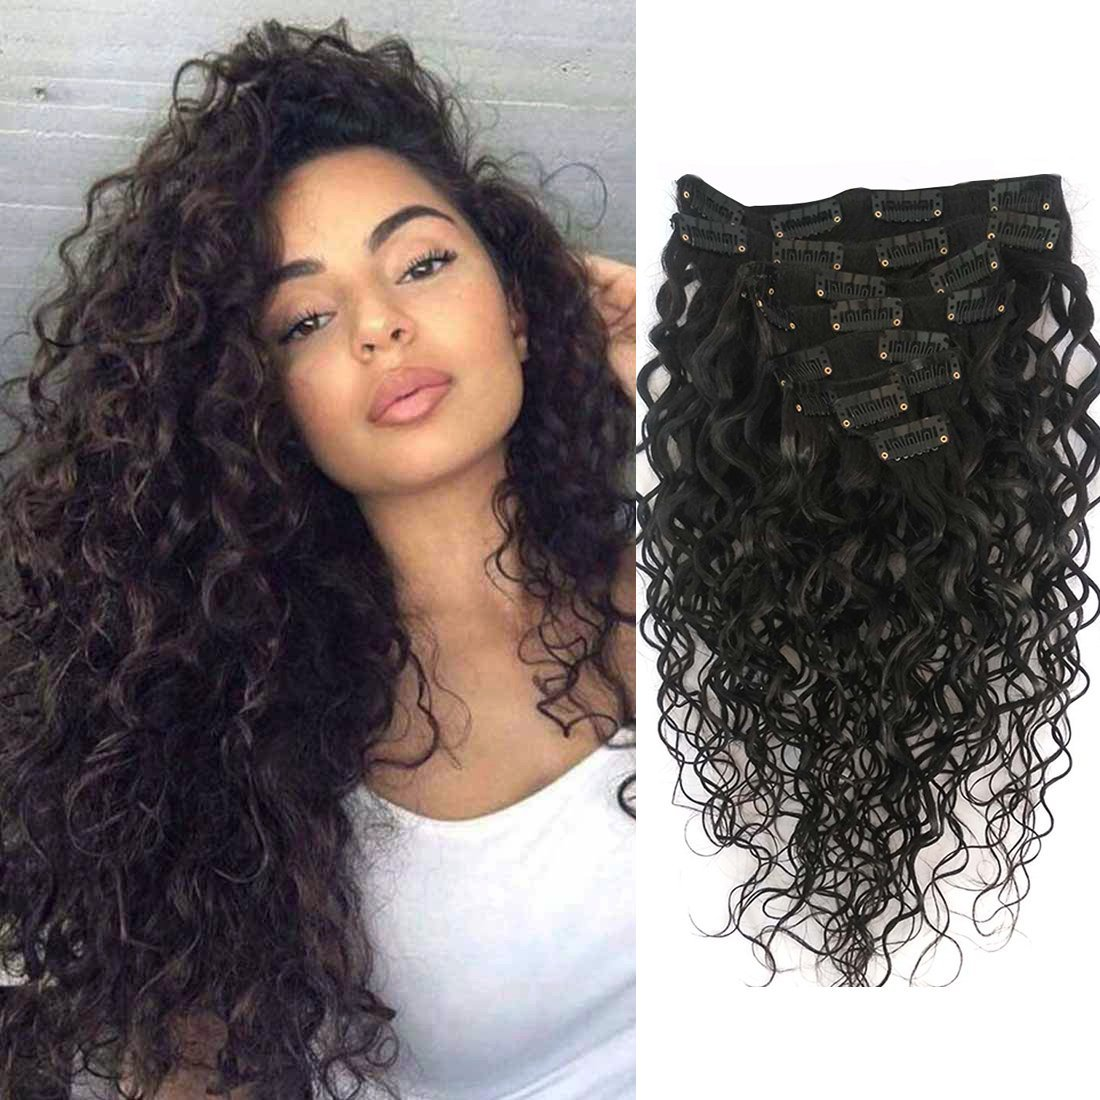 Cheap 8 Inches Hair Extensions Find 8 Inches Hair Extensions Deals